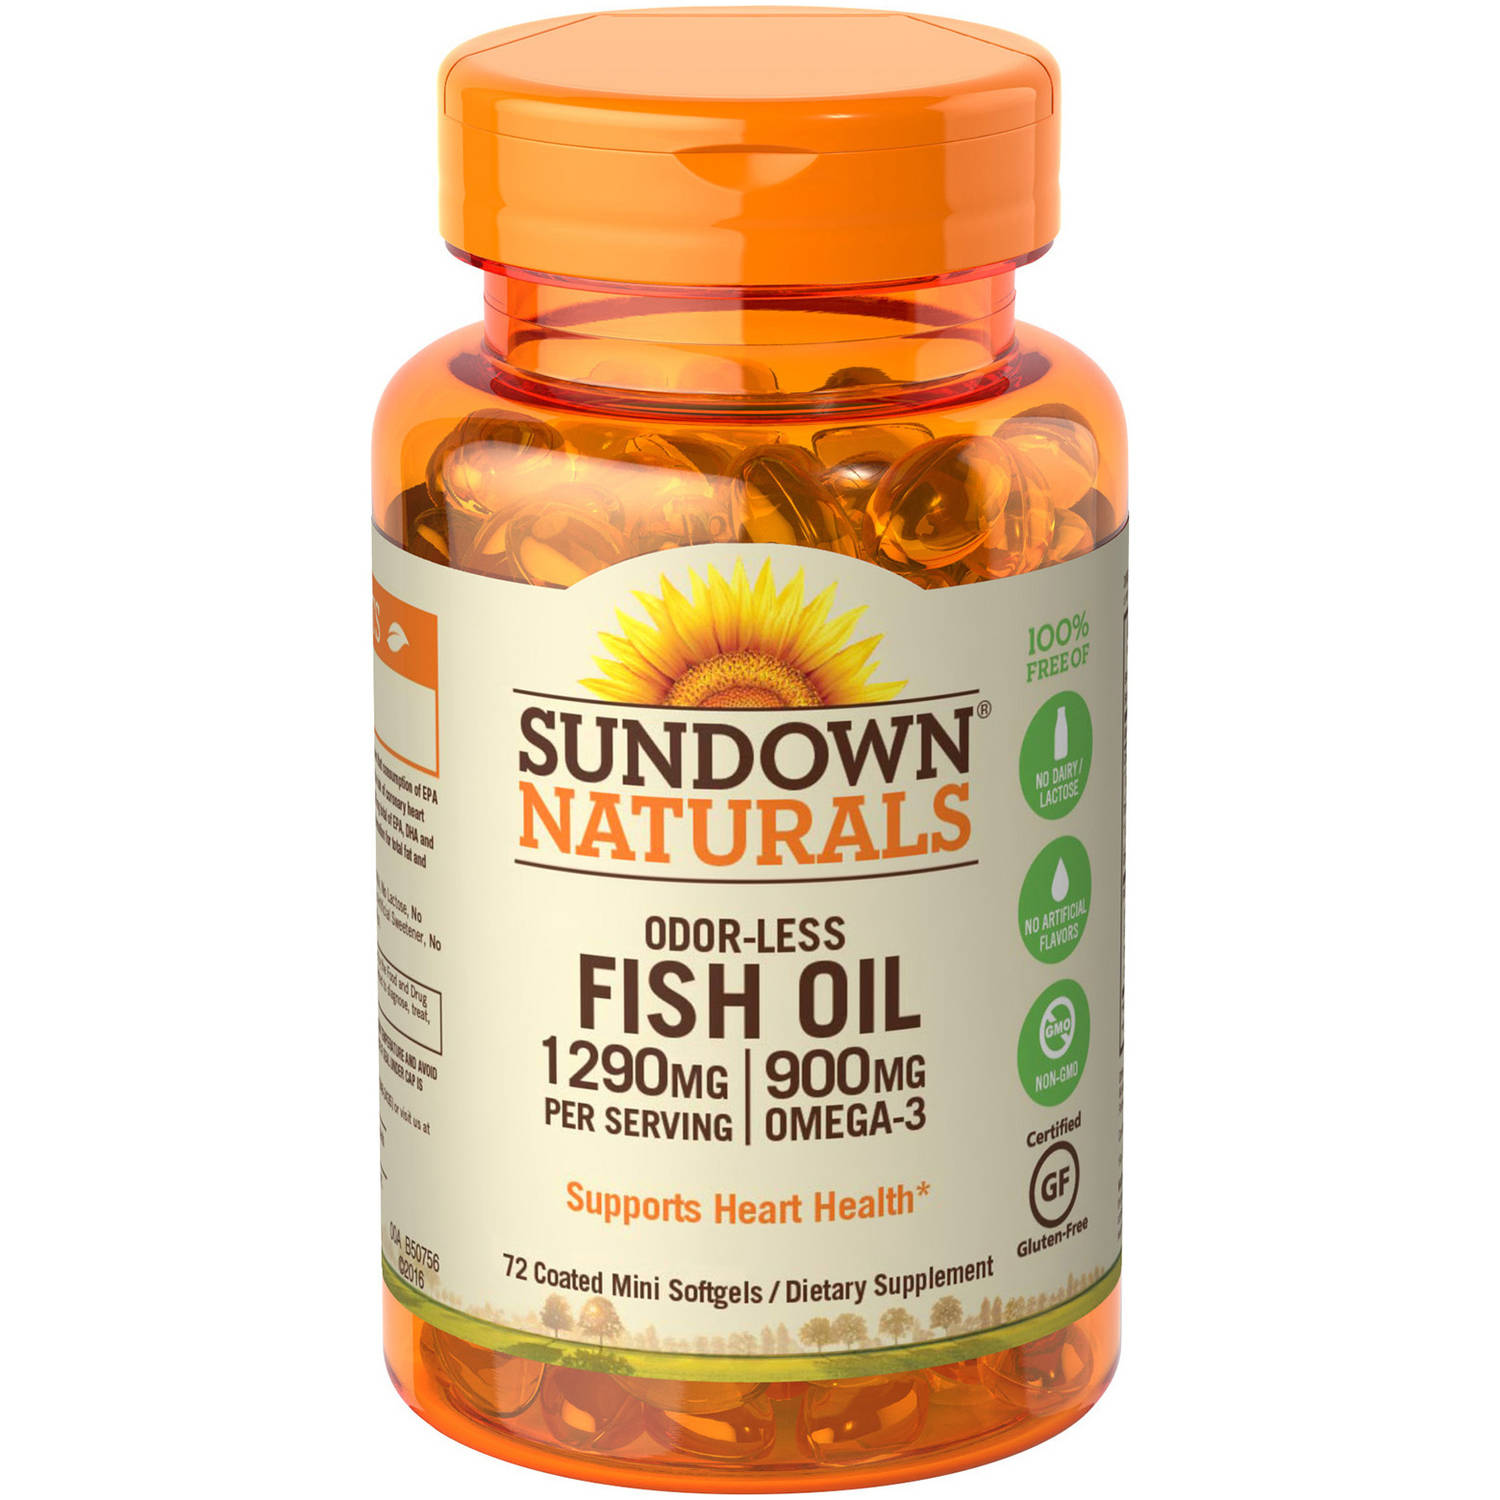 Sundown Naturals Odorless Premium Omega-3 Fish Oil Dietary Supplement Mini Softgels, 1290mg, 60 count